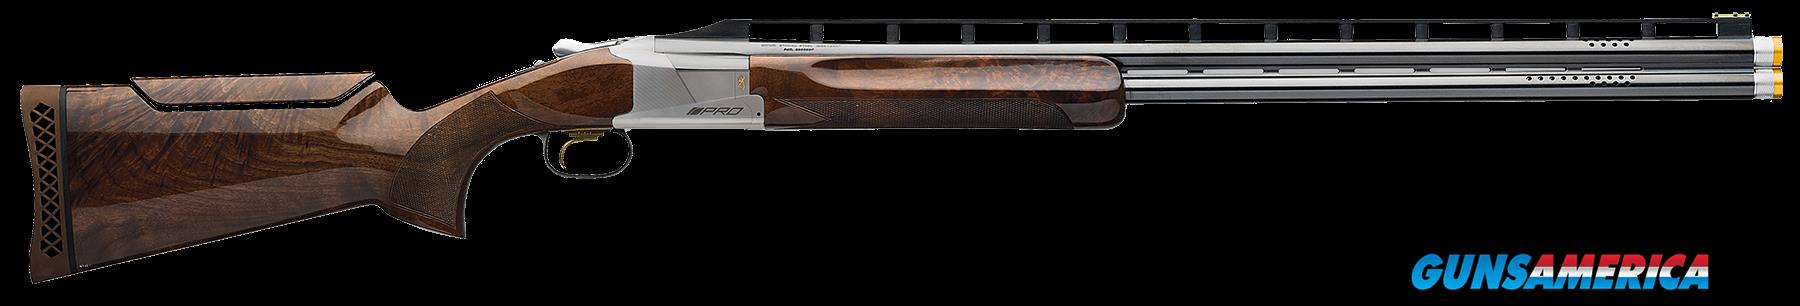 "Browning 0180033010 725 Citori Pro Trap O/U 12 Gauge 30"" 2.75"" Blk Walnut Stock  Guns > Shotguns > B Misc Shotguns"